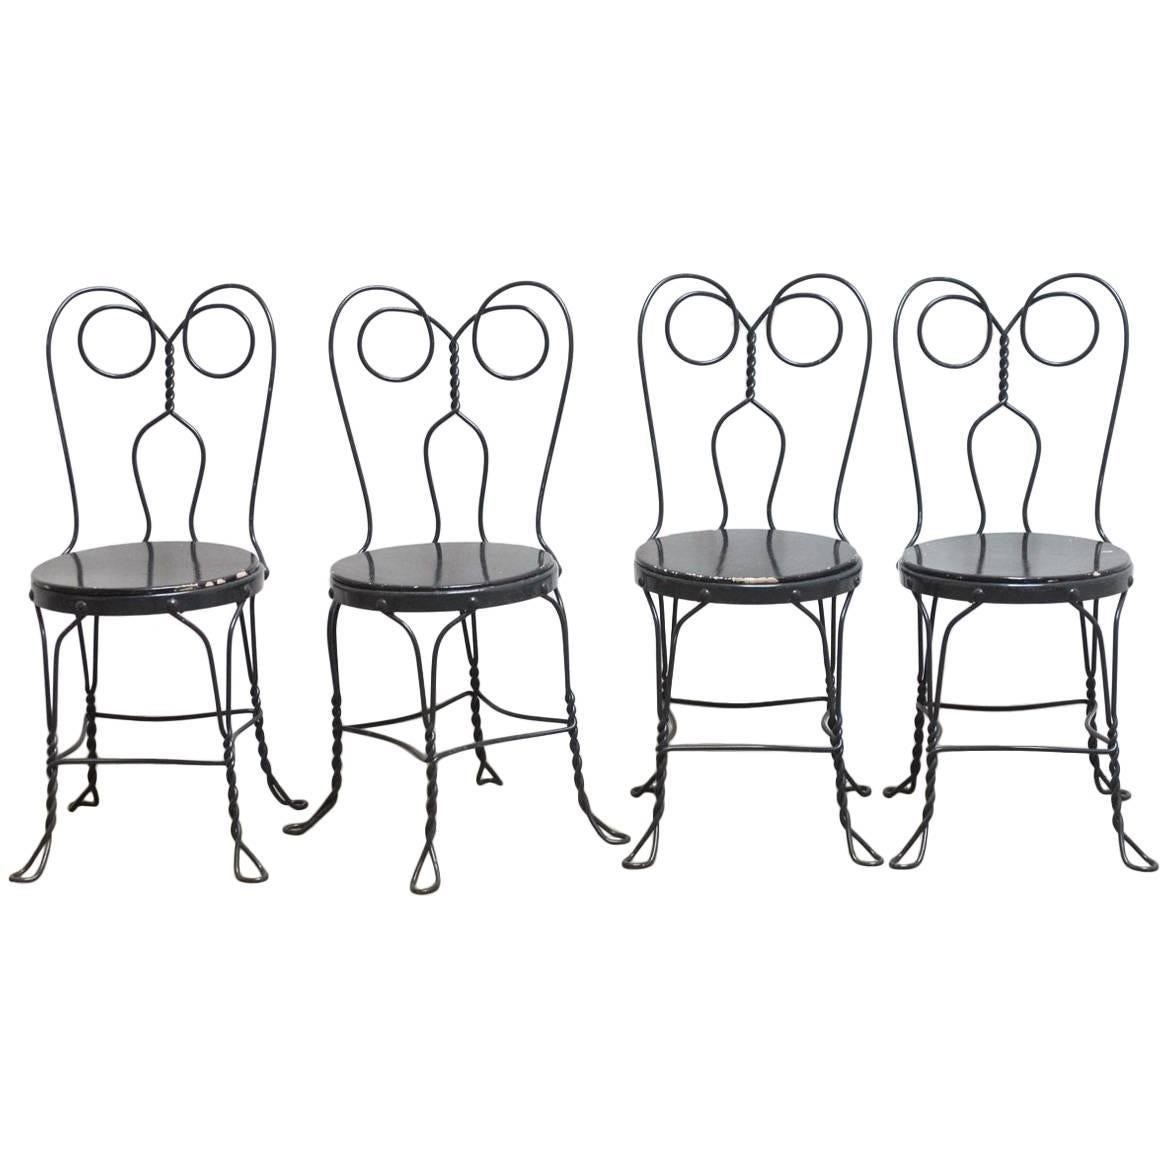 art nouveau dining room chairs 34 for sale at 1stdibs Art Deco of the 1920 S set of four metal bistro or ice cream parlor chairs